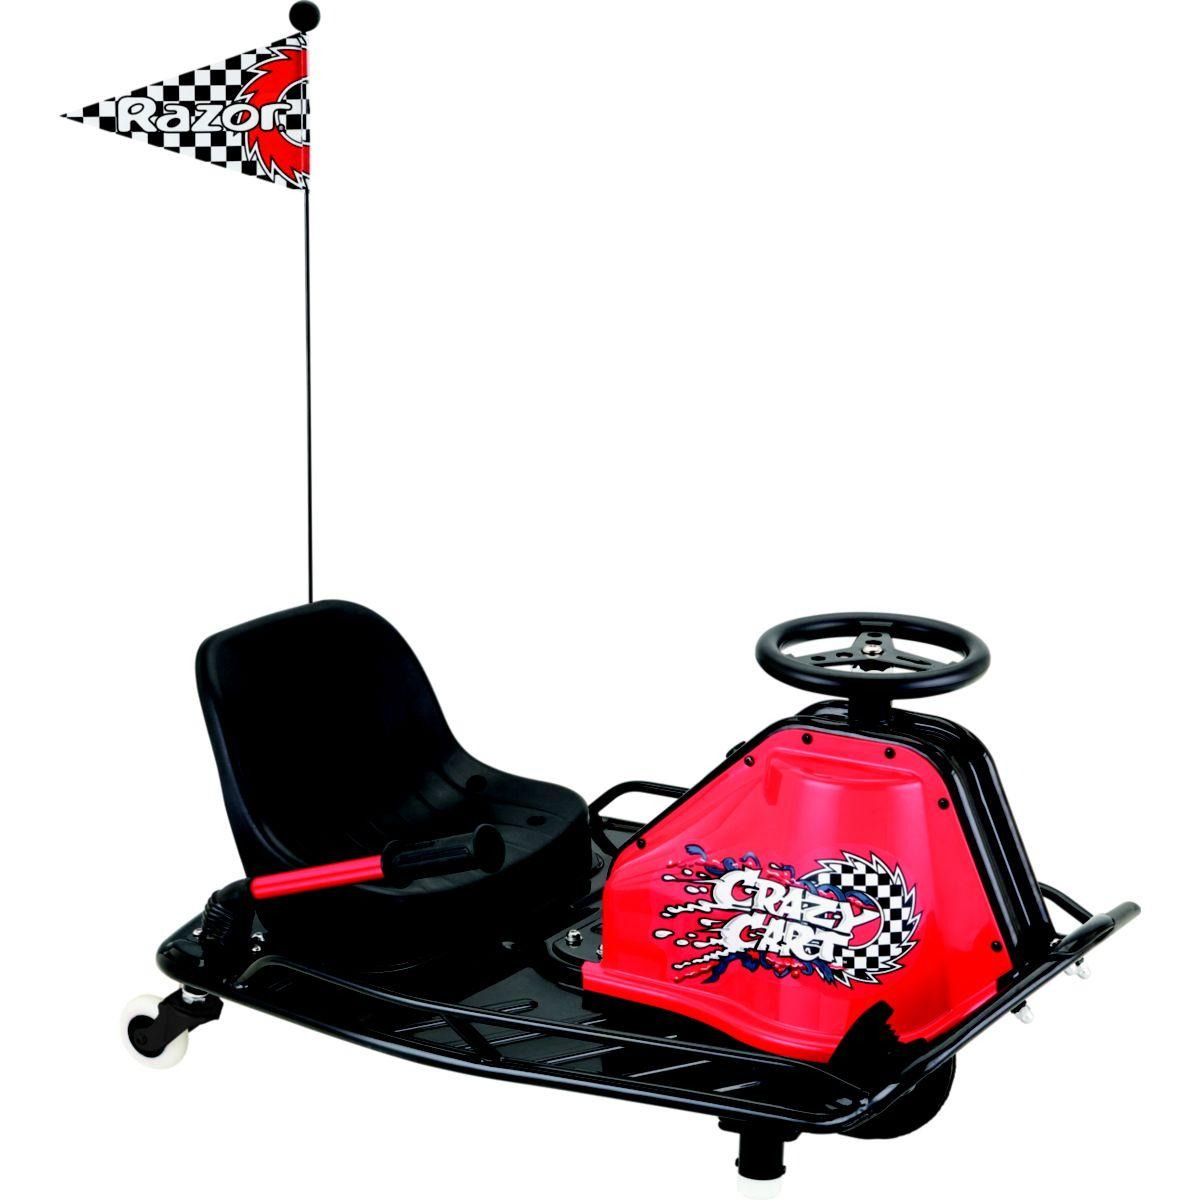 Kart razor crazy cart - 2% de remise imm�diate avec le code : priv2 (photo)